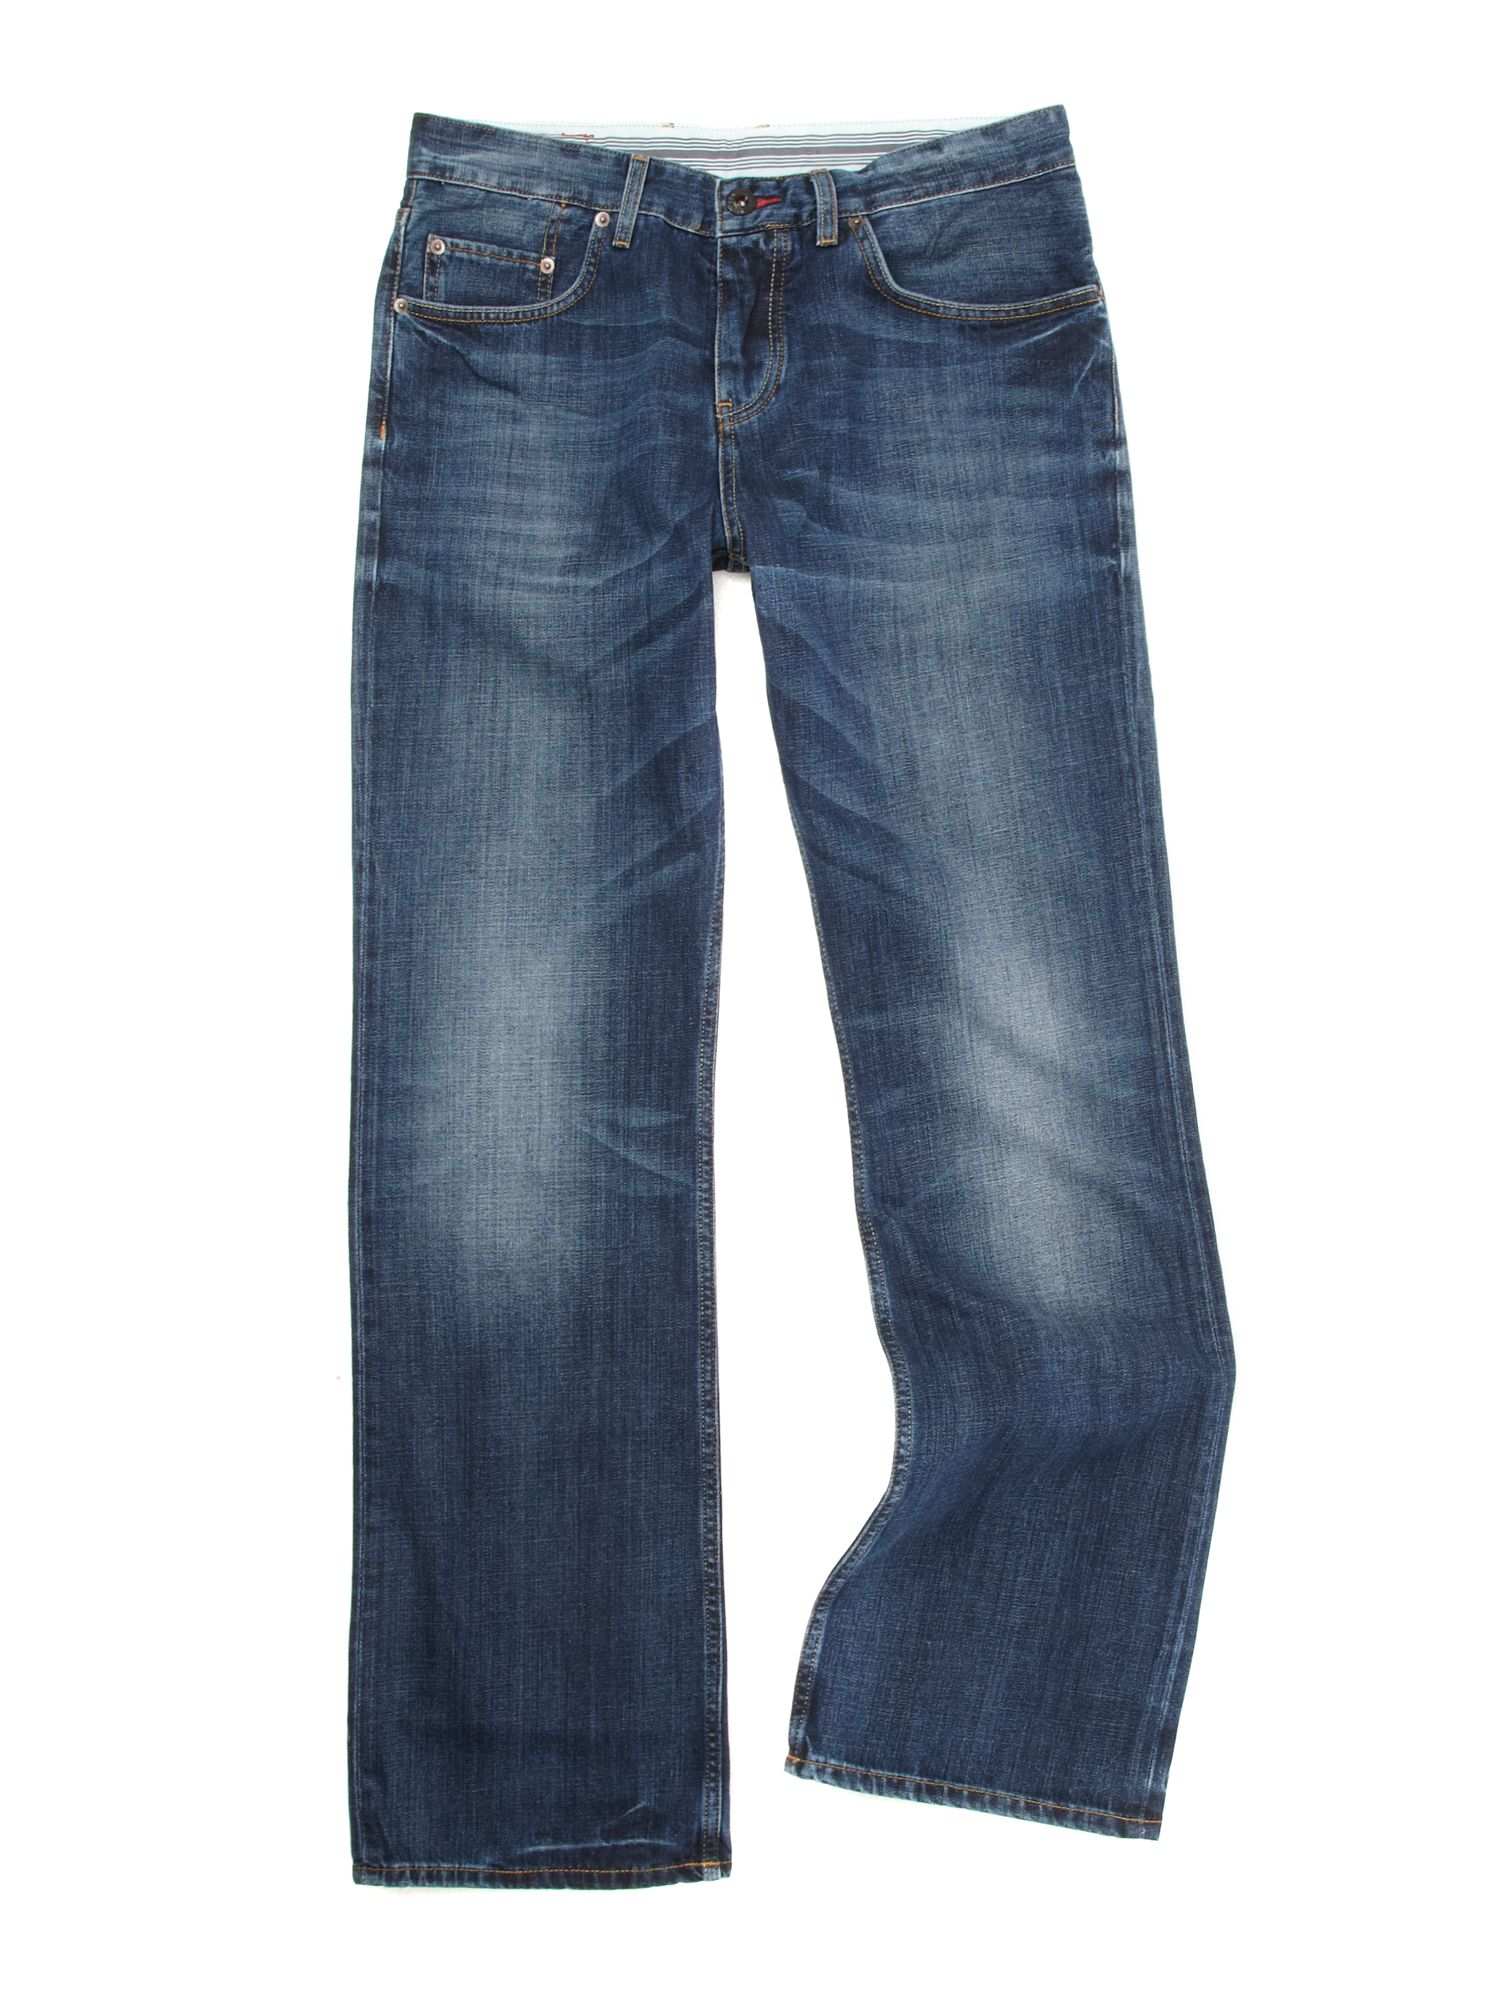 Ripped Levi Jeans Mens